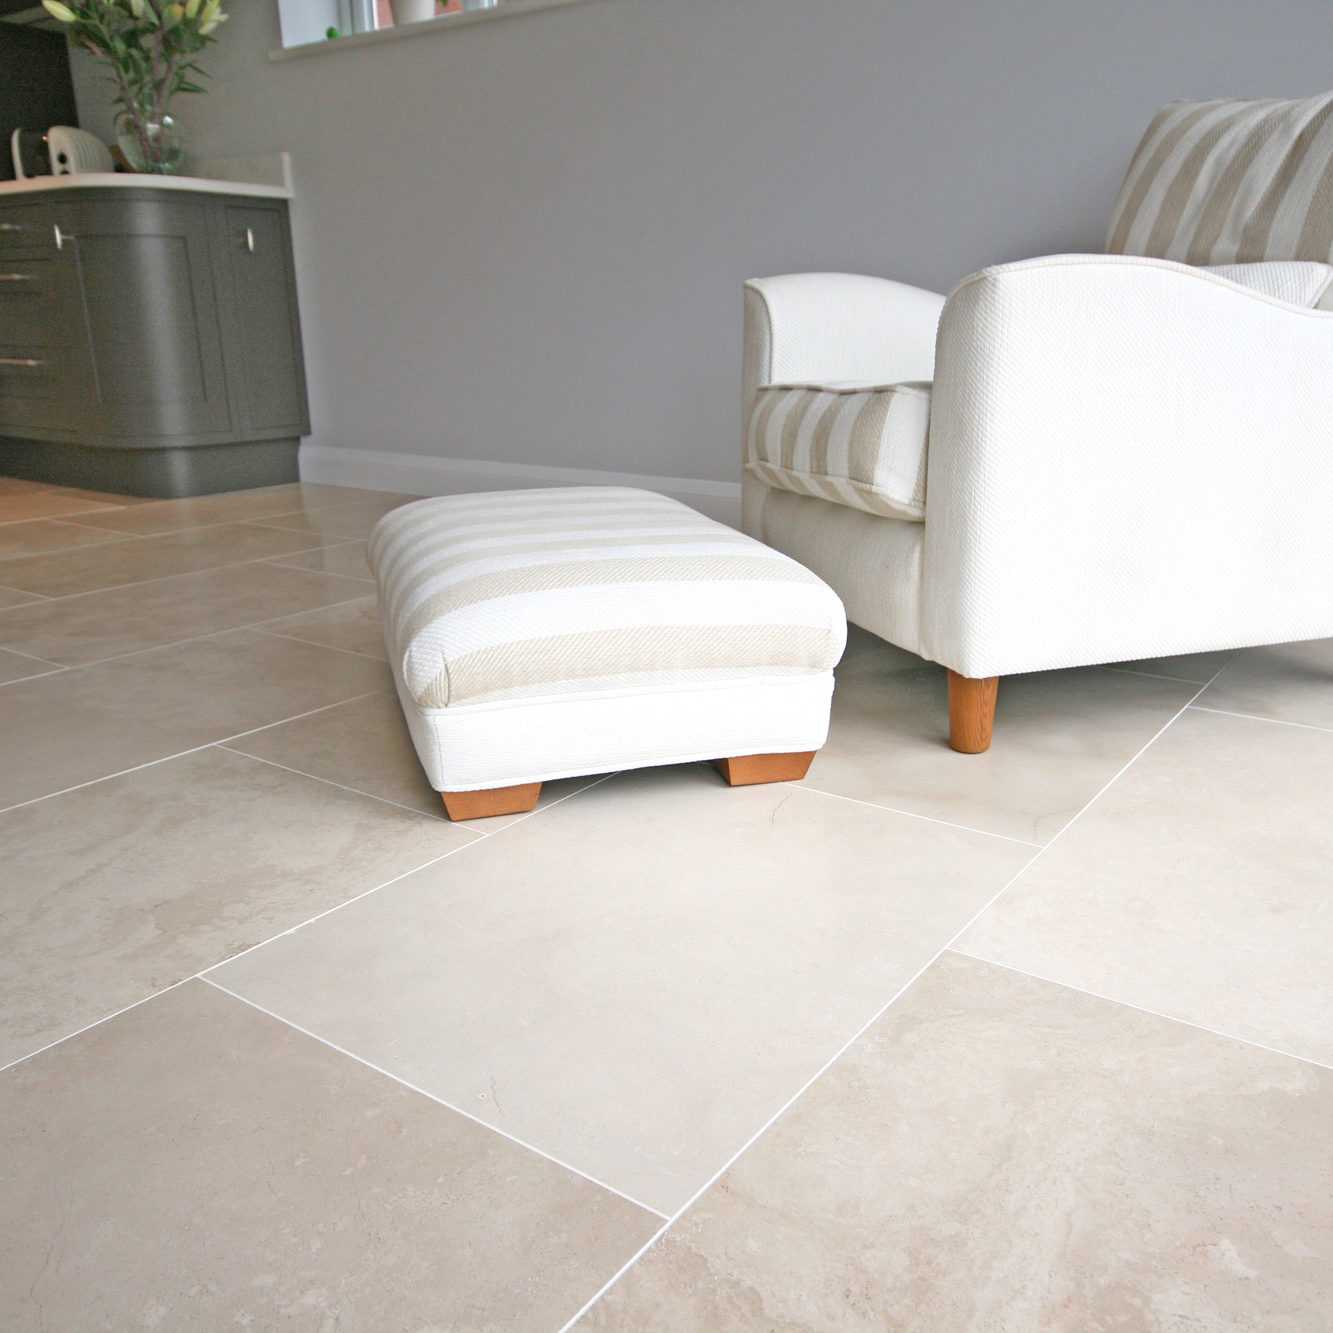 Flooring Solutions in Fulham and London